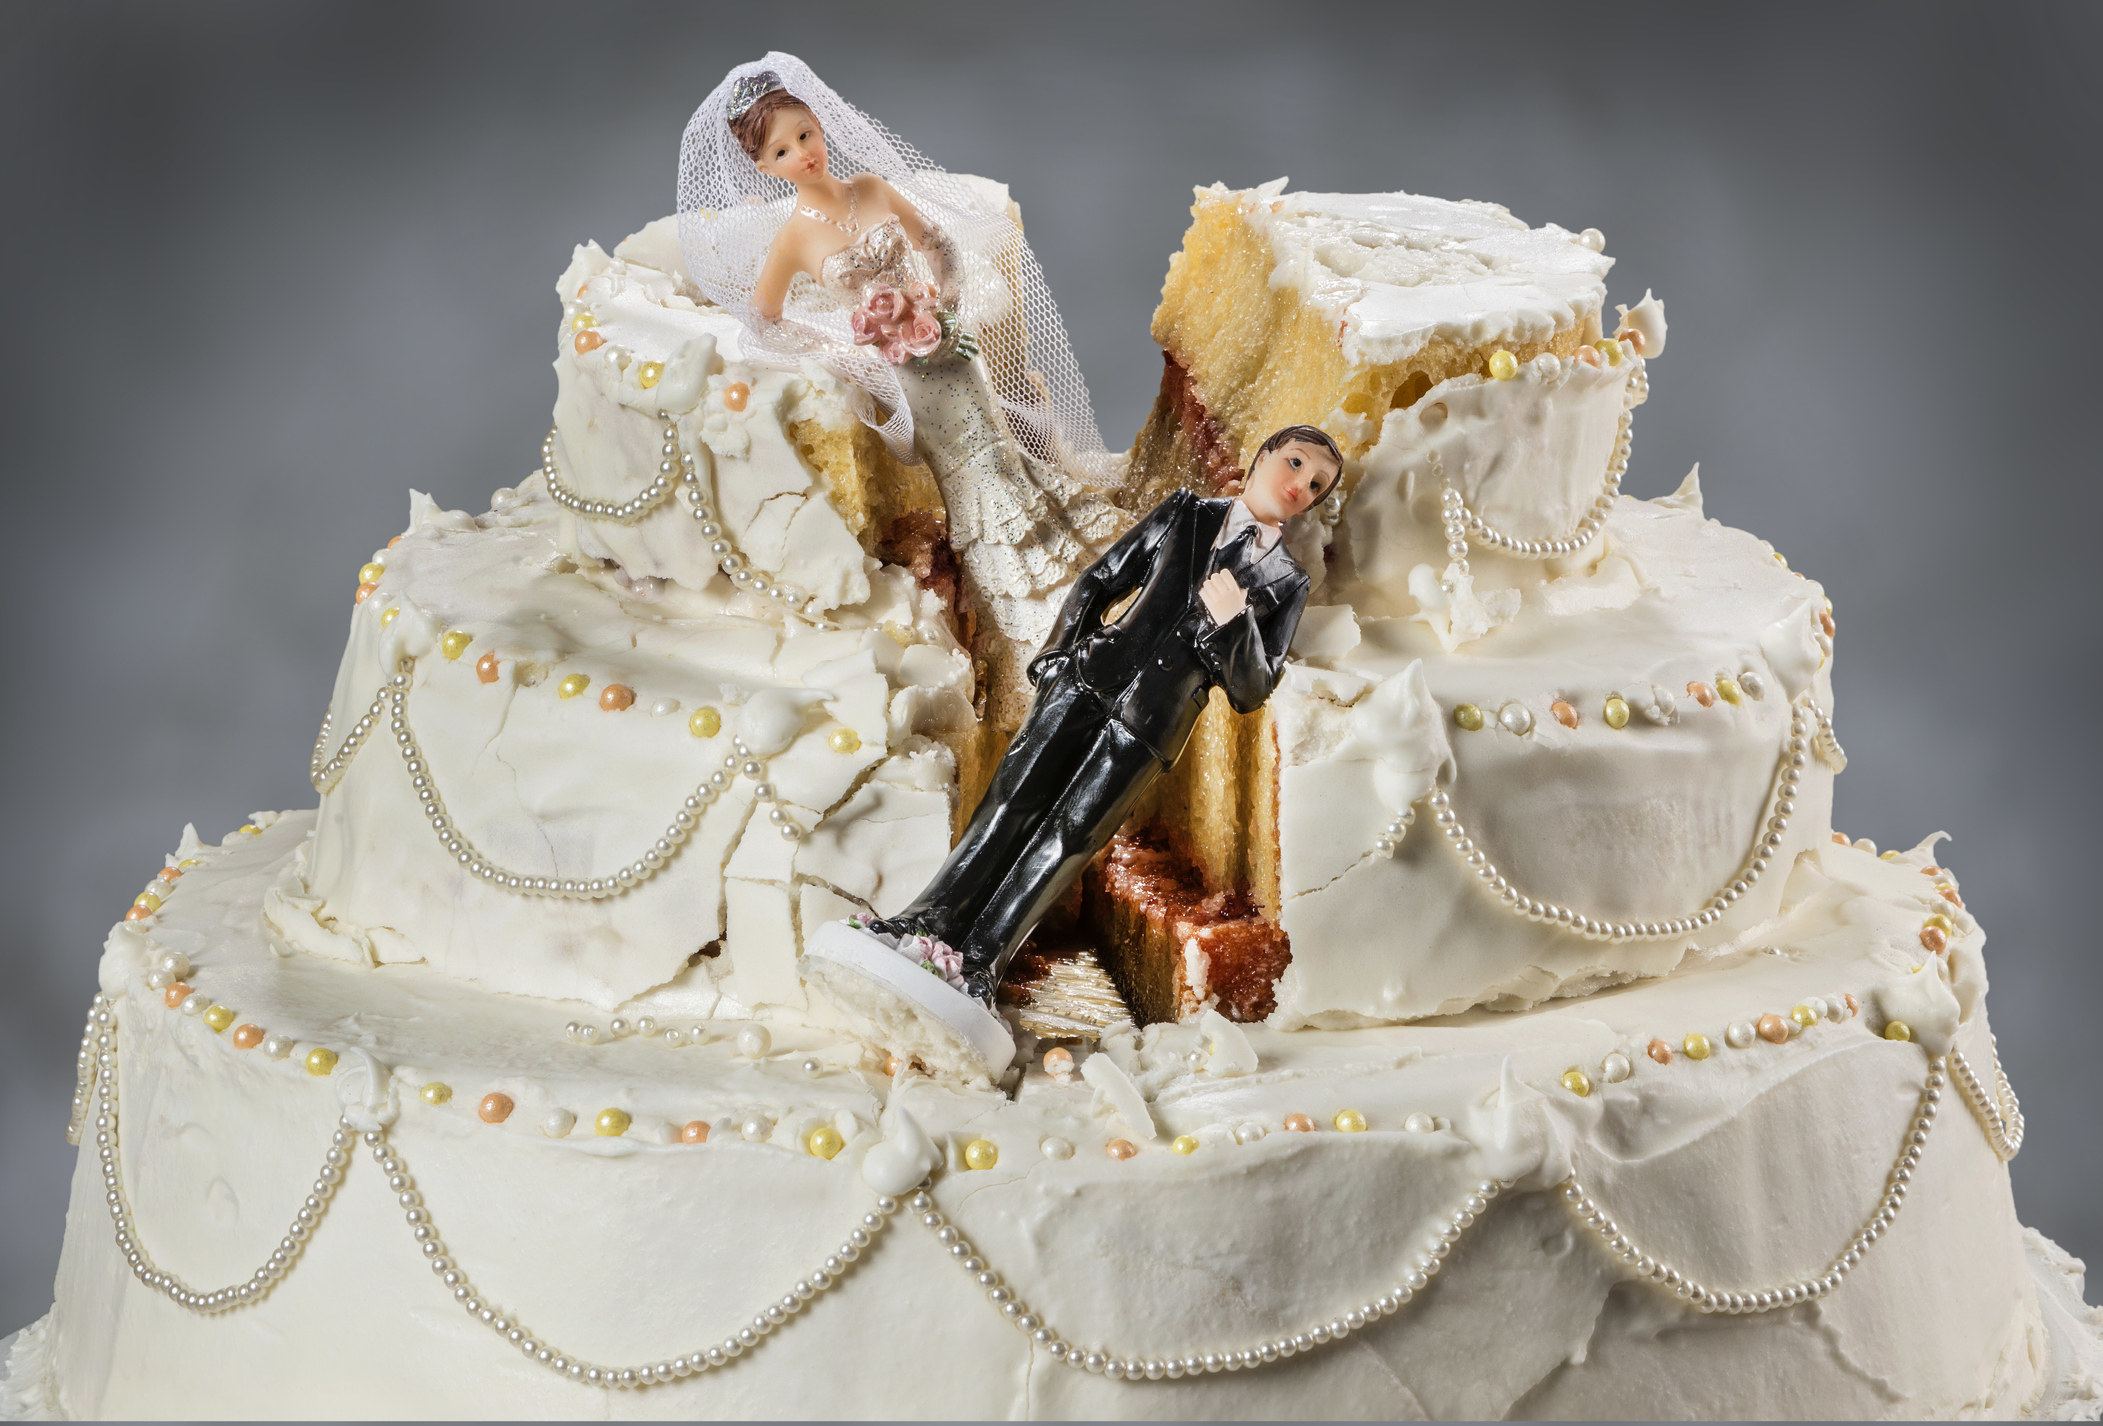 Figurines of a bride and groom falling down a split wedding cake